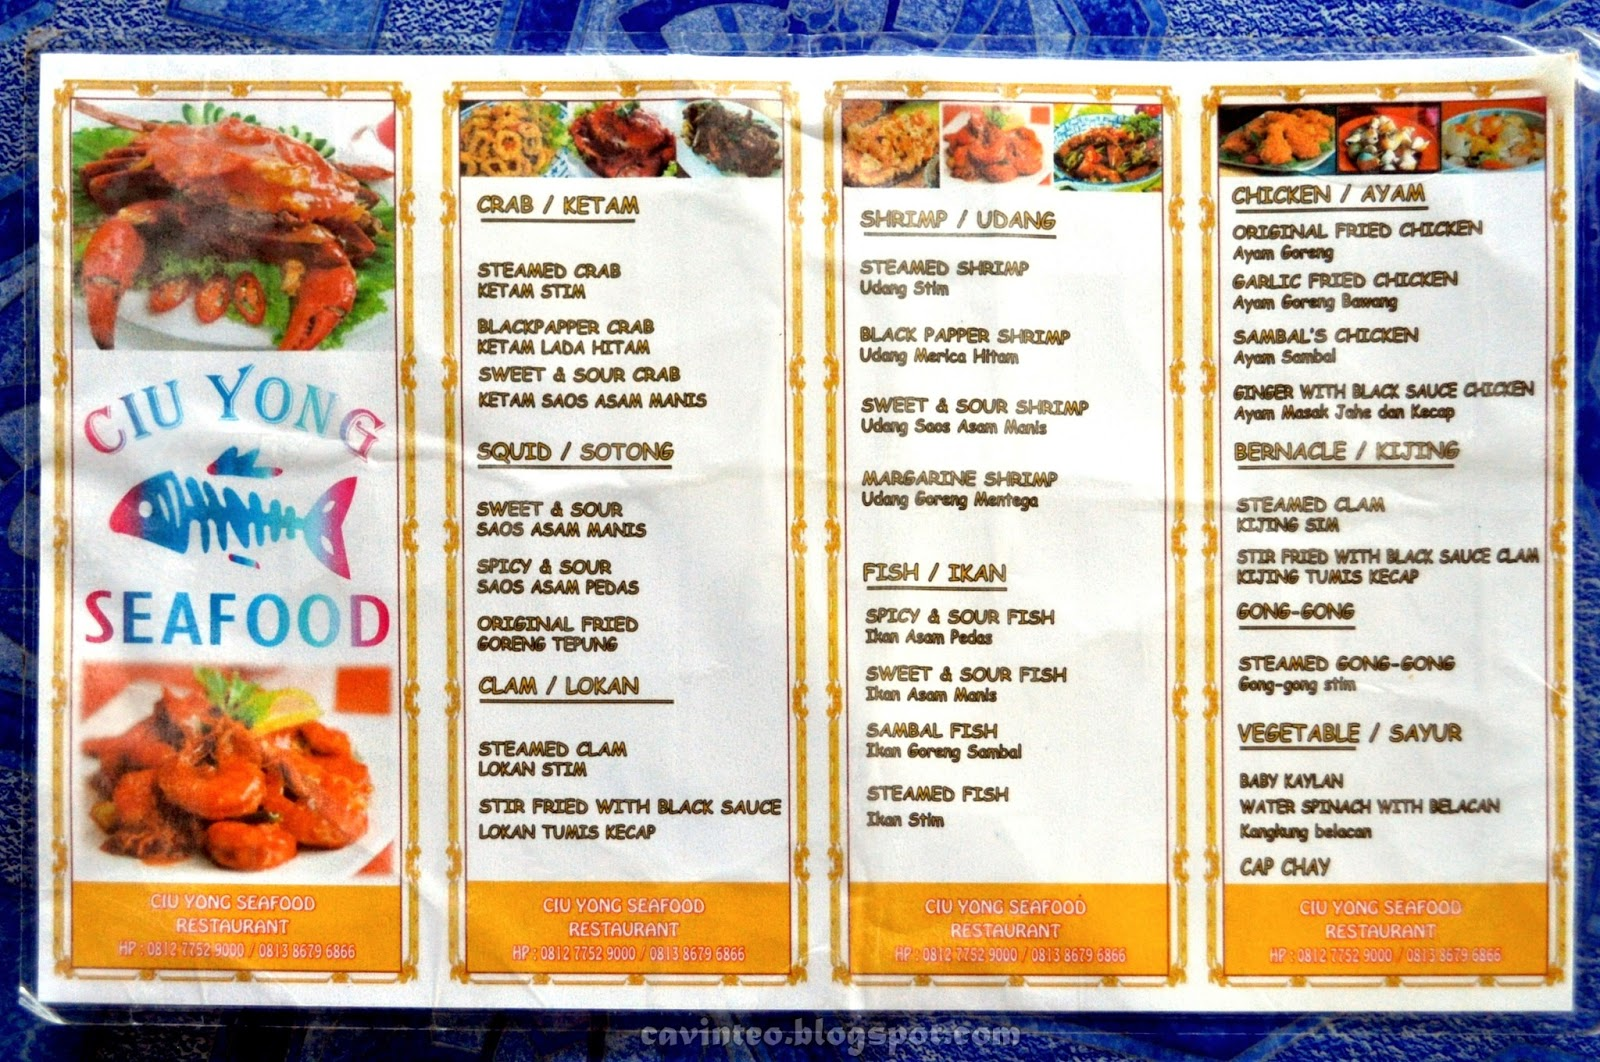 Islands Fish Grill Restaurant Menu